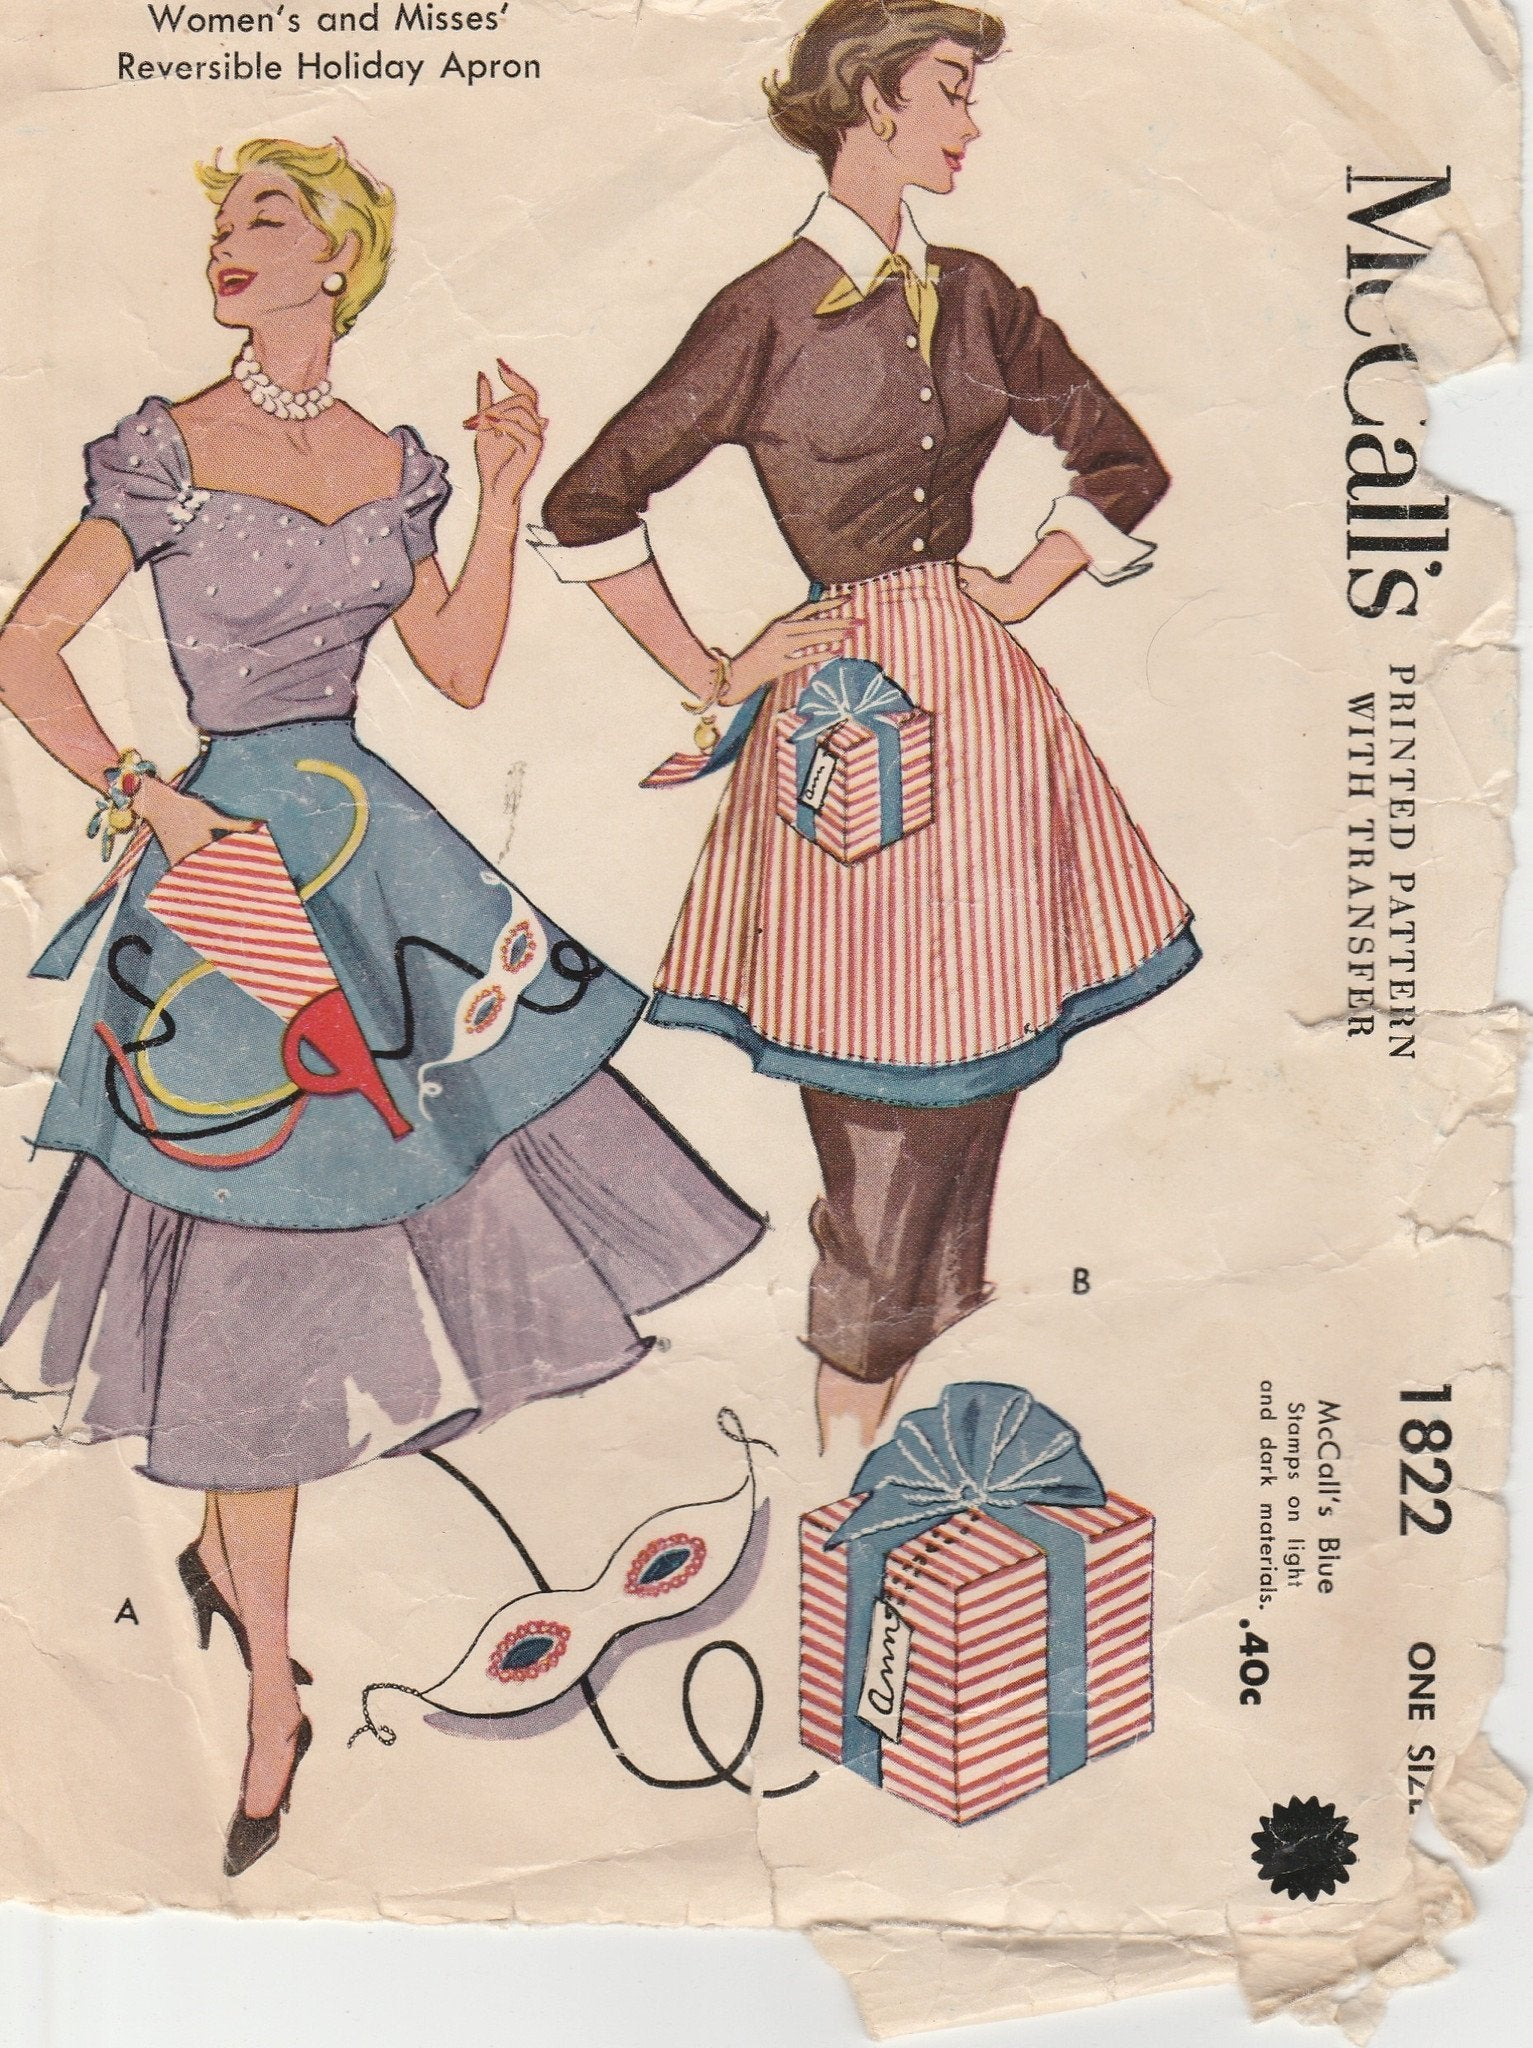 McCall's 1822 Holiday Apron Vintage Pattern 1950's Reversible - VintageStitching - Vintage Sewing Patterns